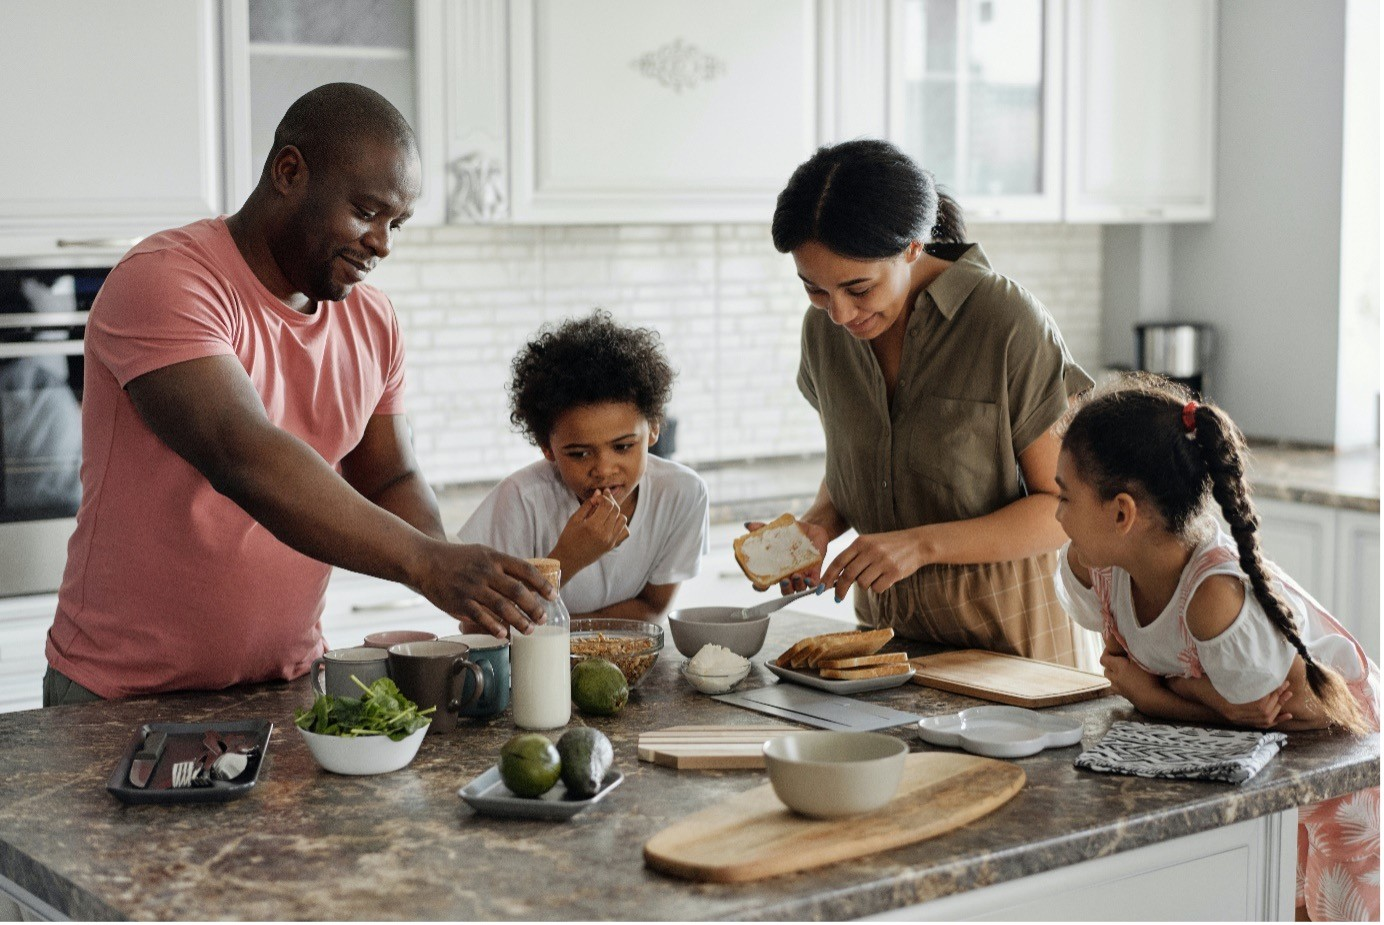 Kitchen habits that impact children's health